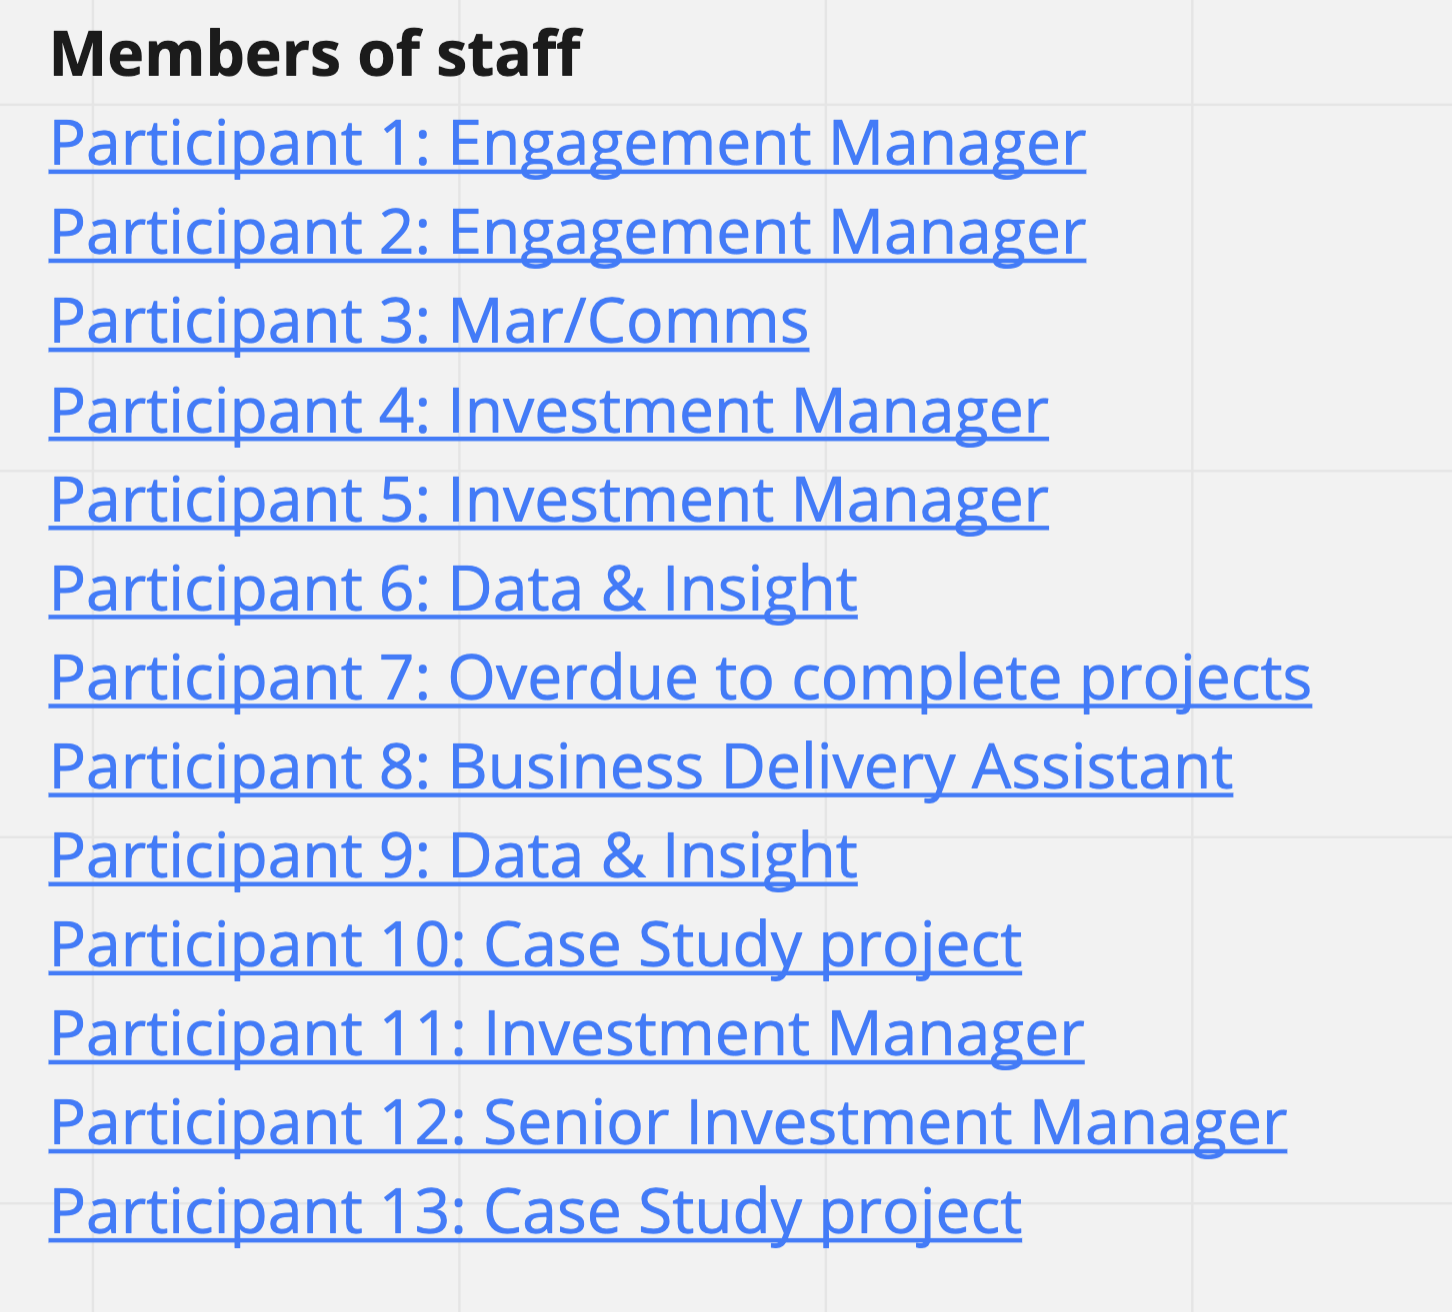 List of links titled members of staff. There are 13 links, each one starts with a participant number and then has a job title